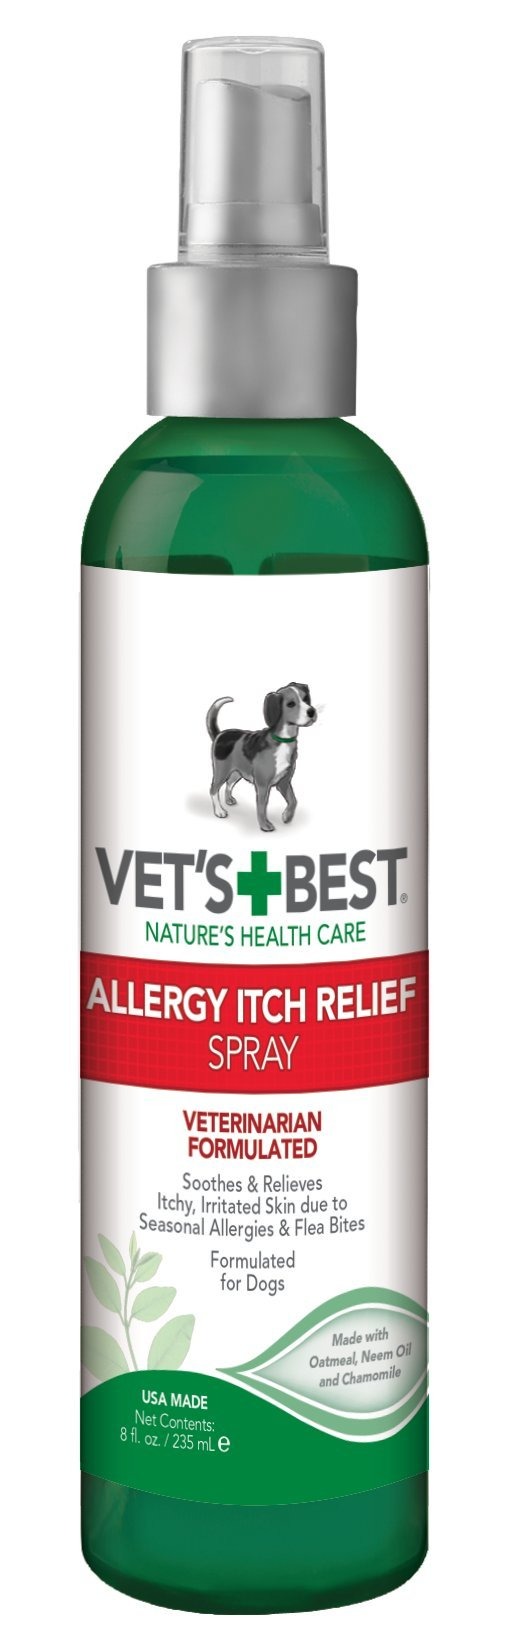 Vet's Best Allergy Itch Relief Spray for Dogs, 8 oz